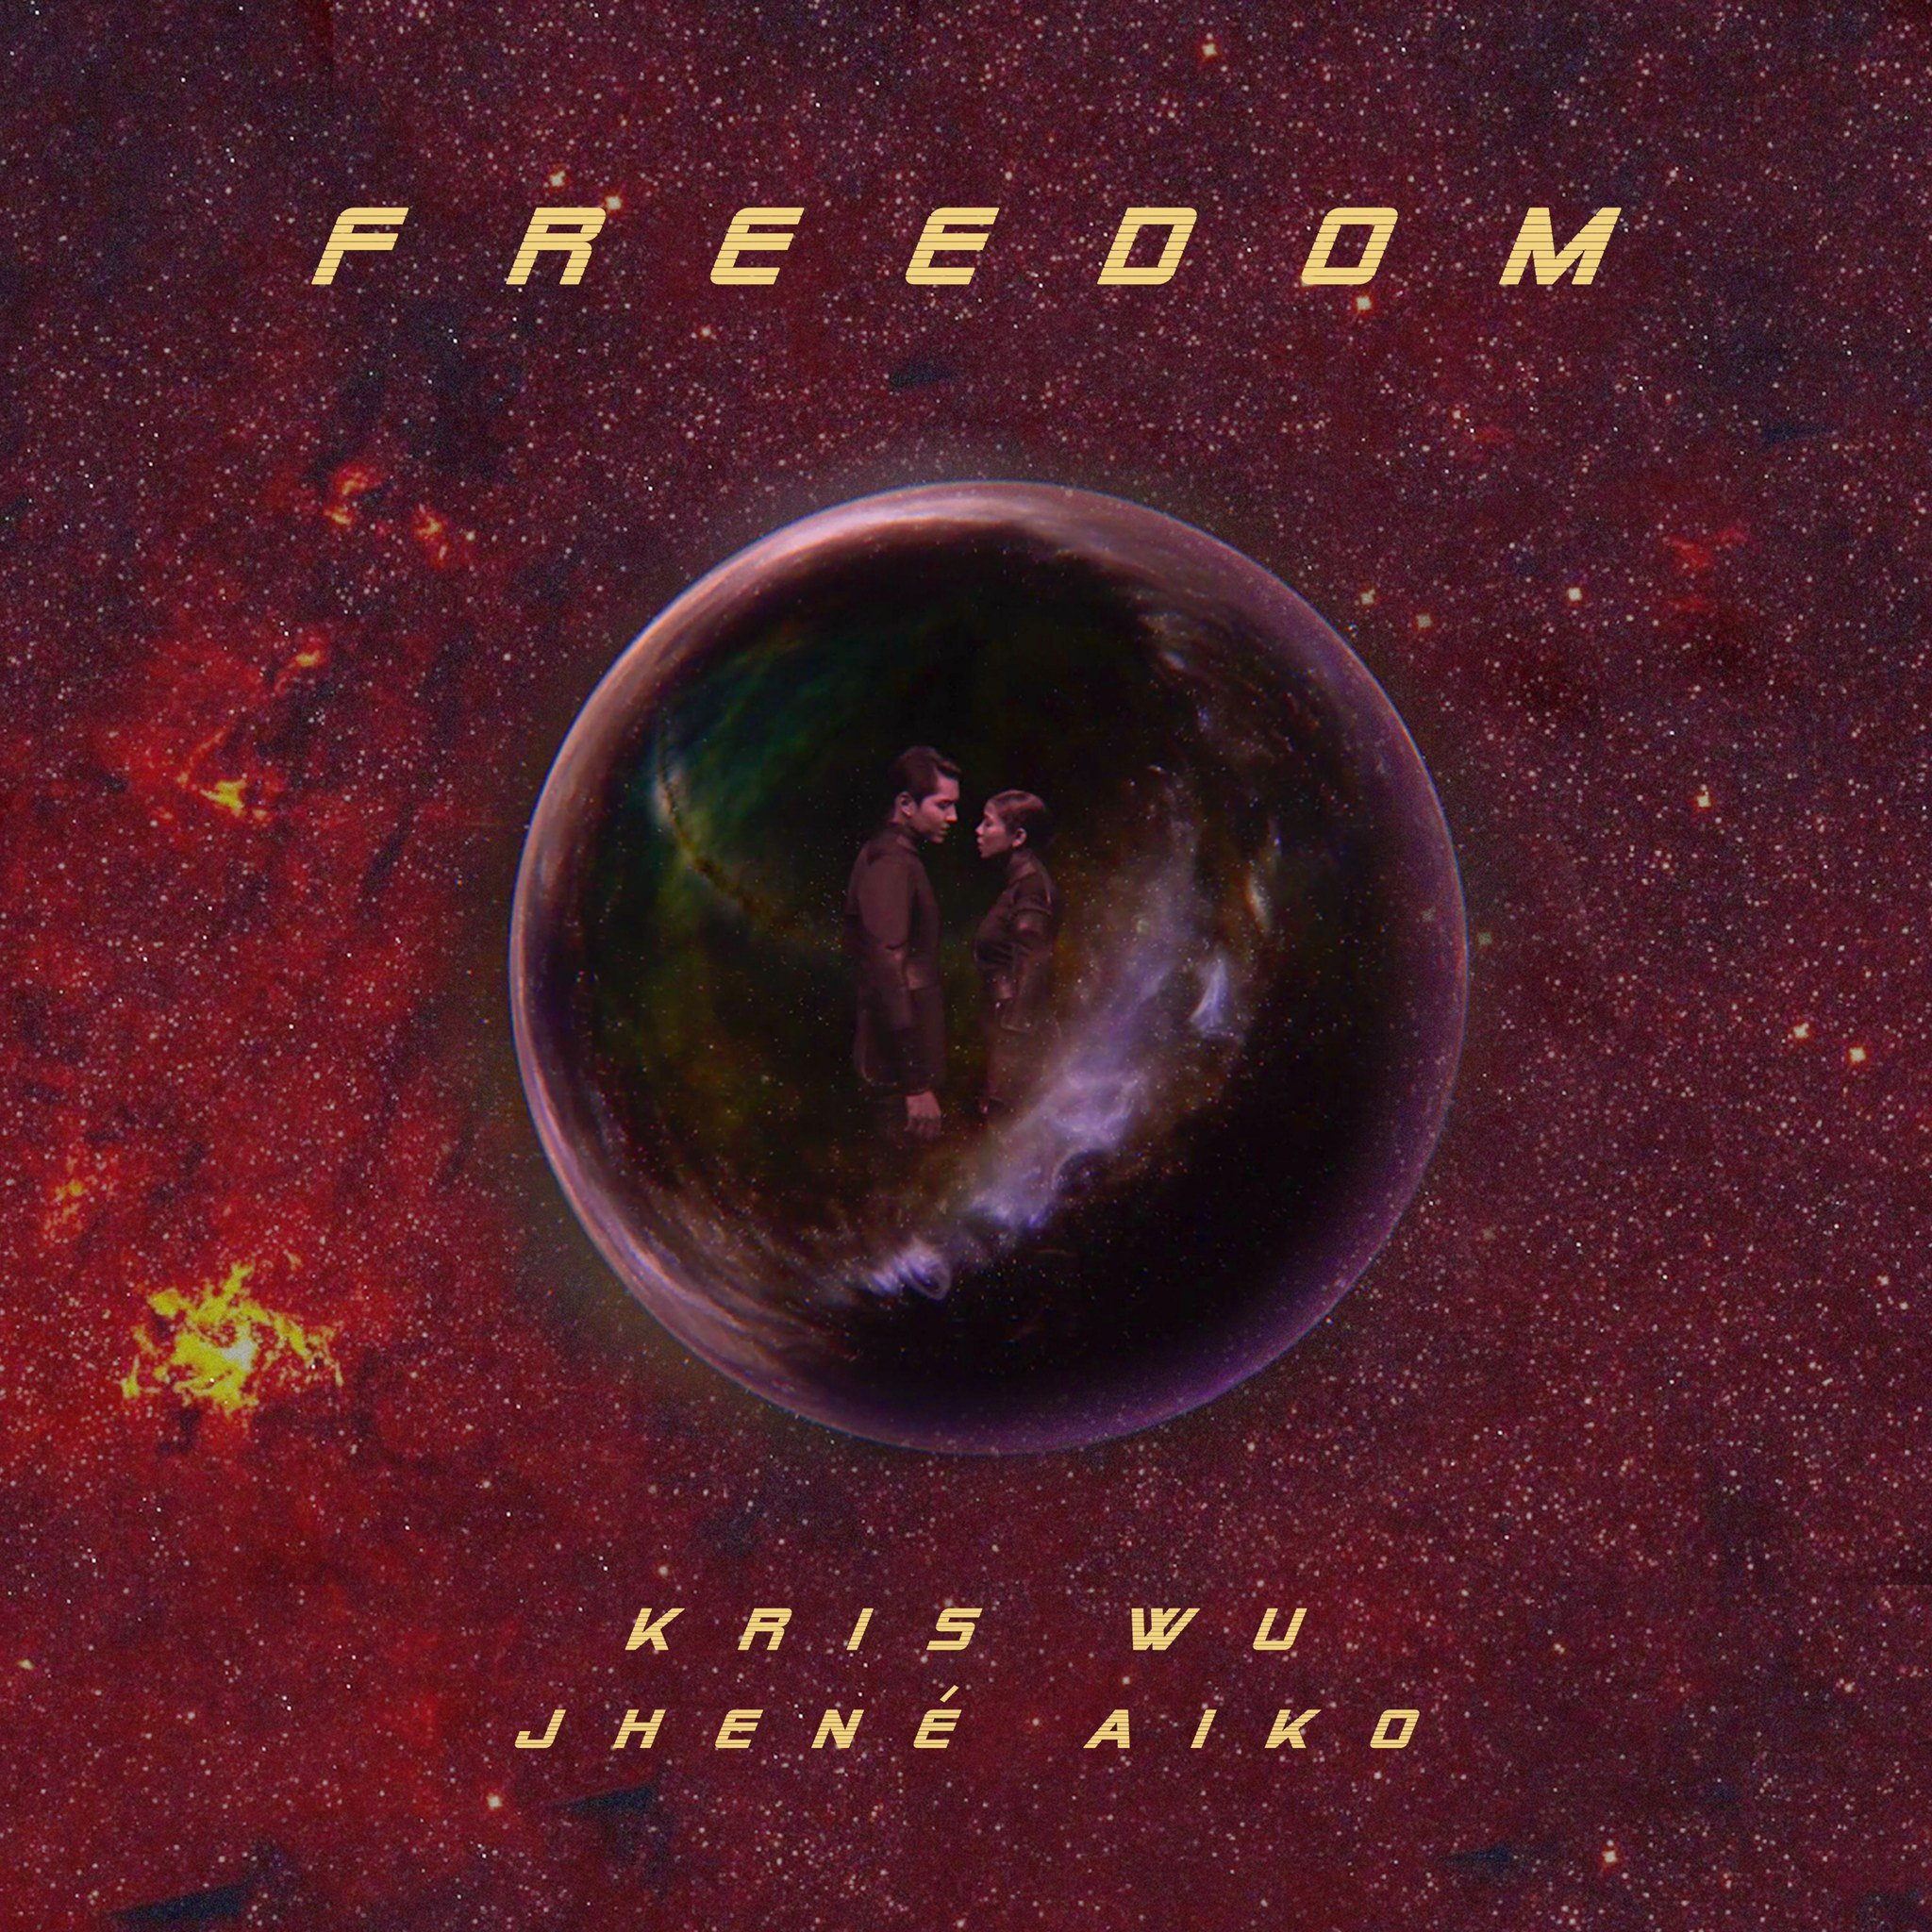 FREEDOM. 7/20. @KrisWu https://t.co/RrBOHCLHnv https://t.co/ktl3PBAFi9